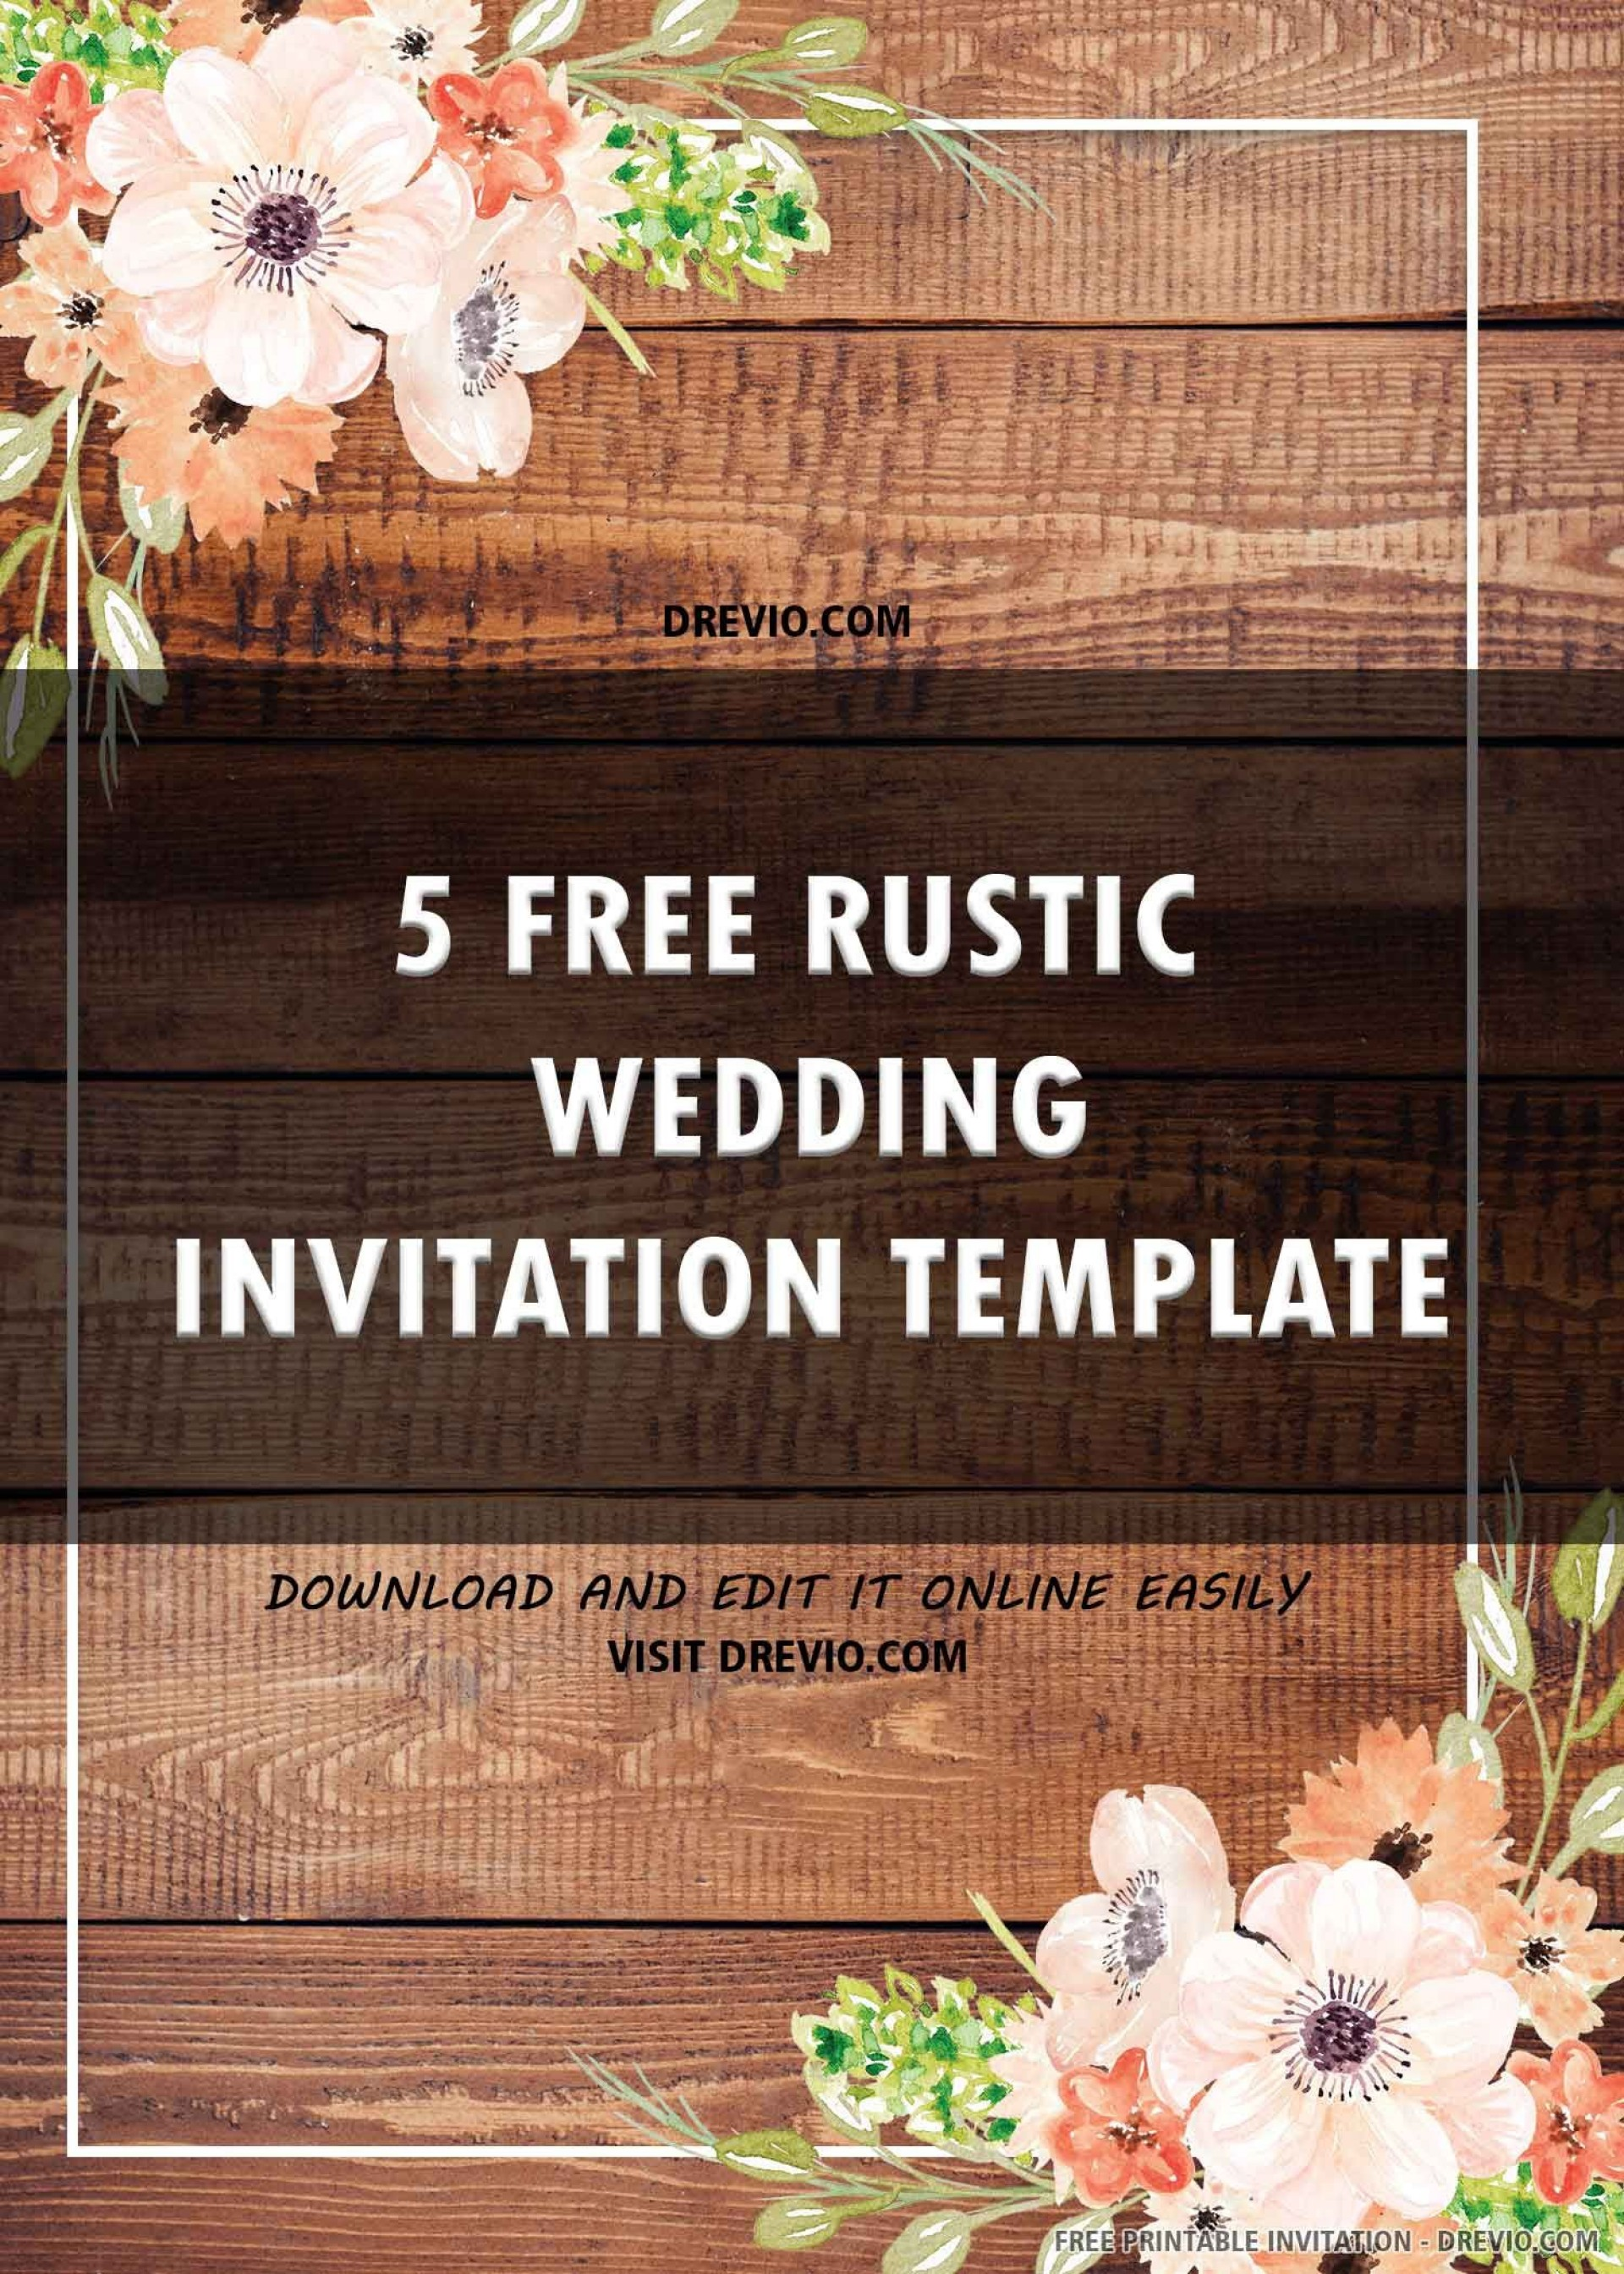 009 Impressive Rustic Wedding Invitation Template Example  Templates Free For Word Maker Photoshop1920